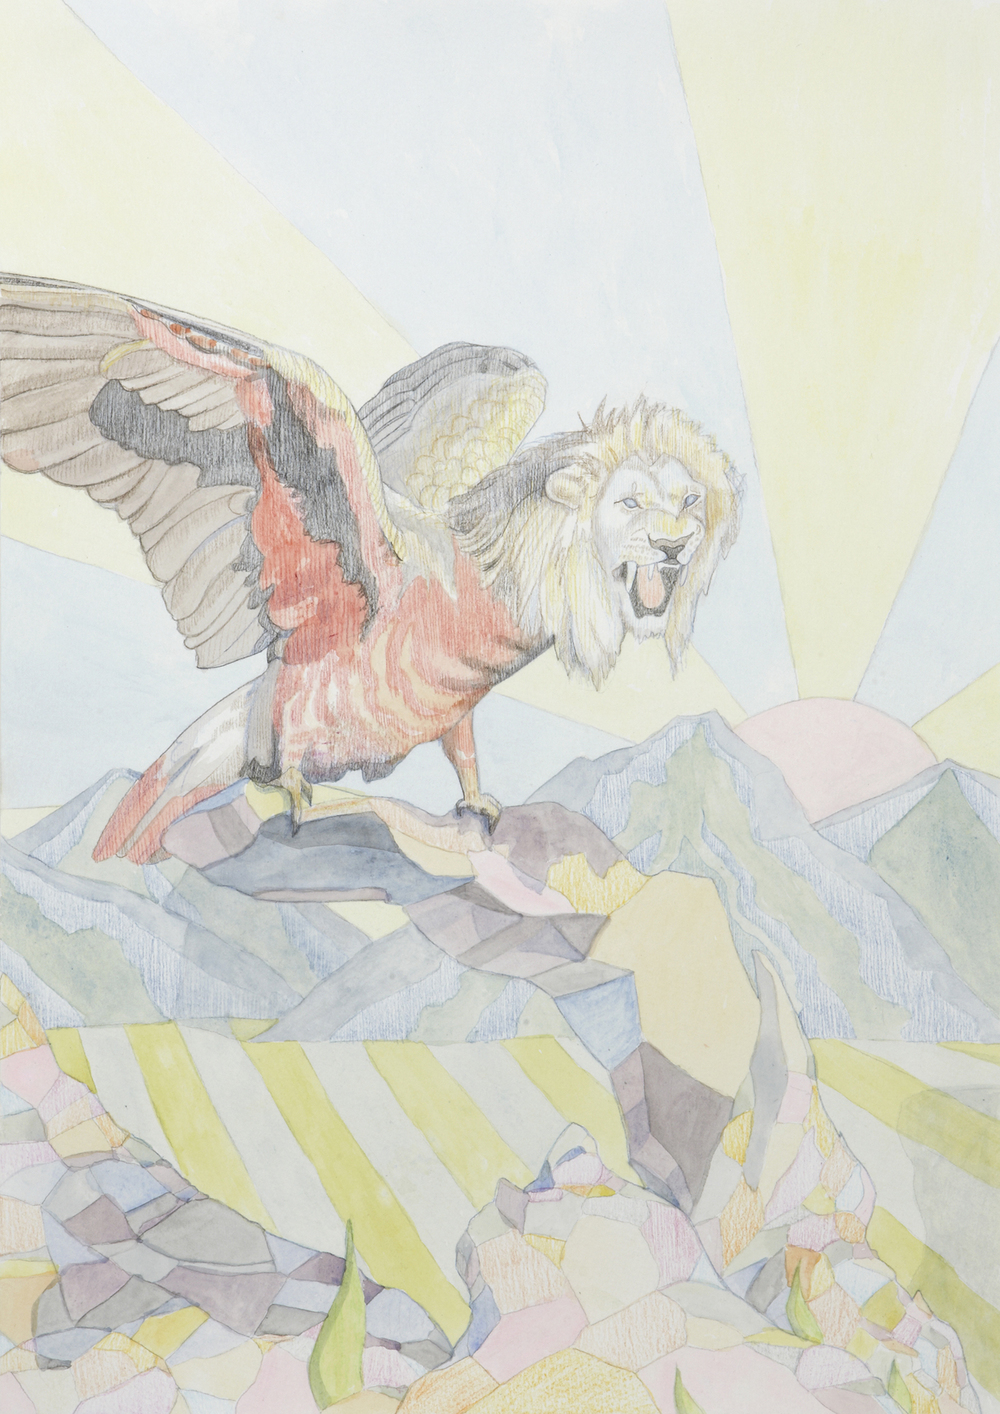 Lion Gallah #3, 2012, Watercolour and pencil on paper, 29.7 x 42.0 cm, Photo: Sam Scoufos